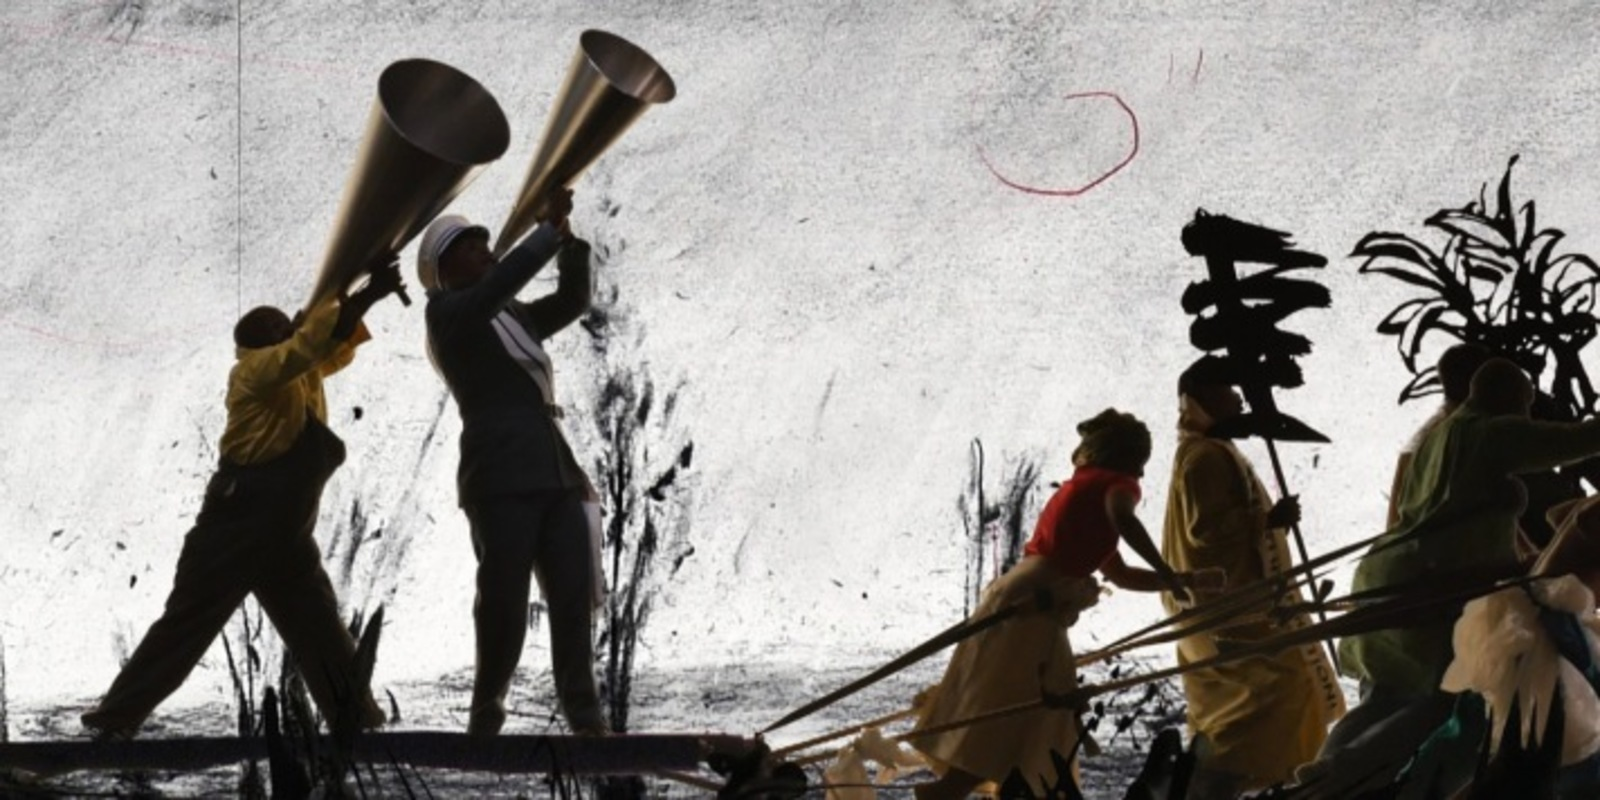 William Kentridge: More Sweetly Play the Dance